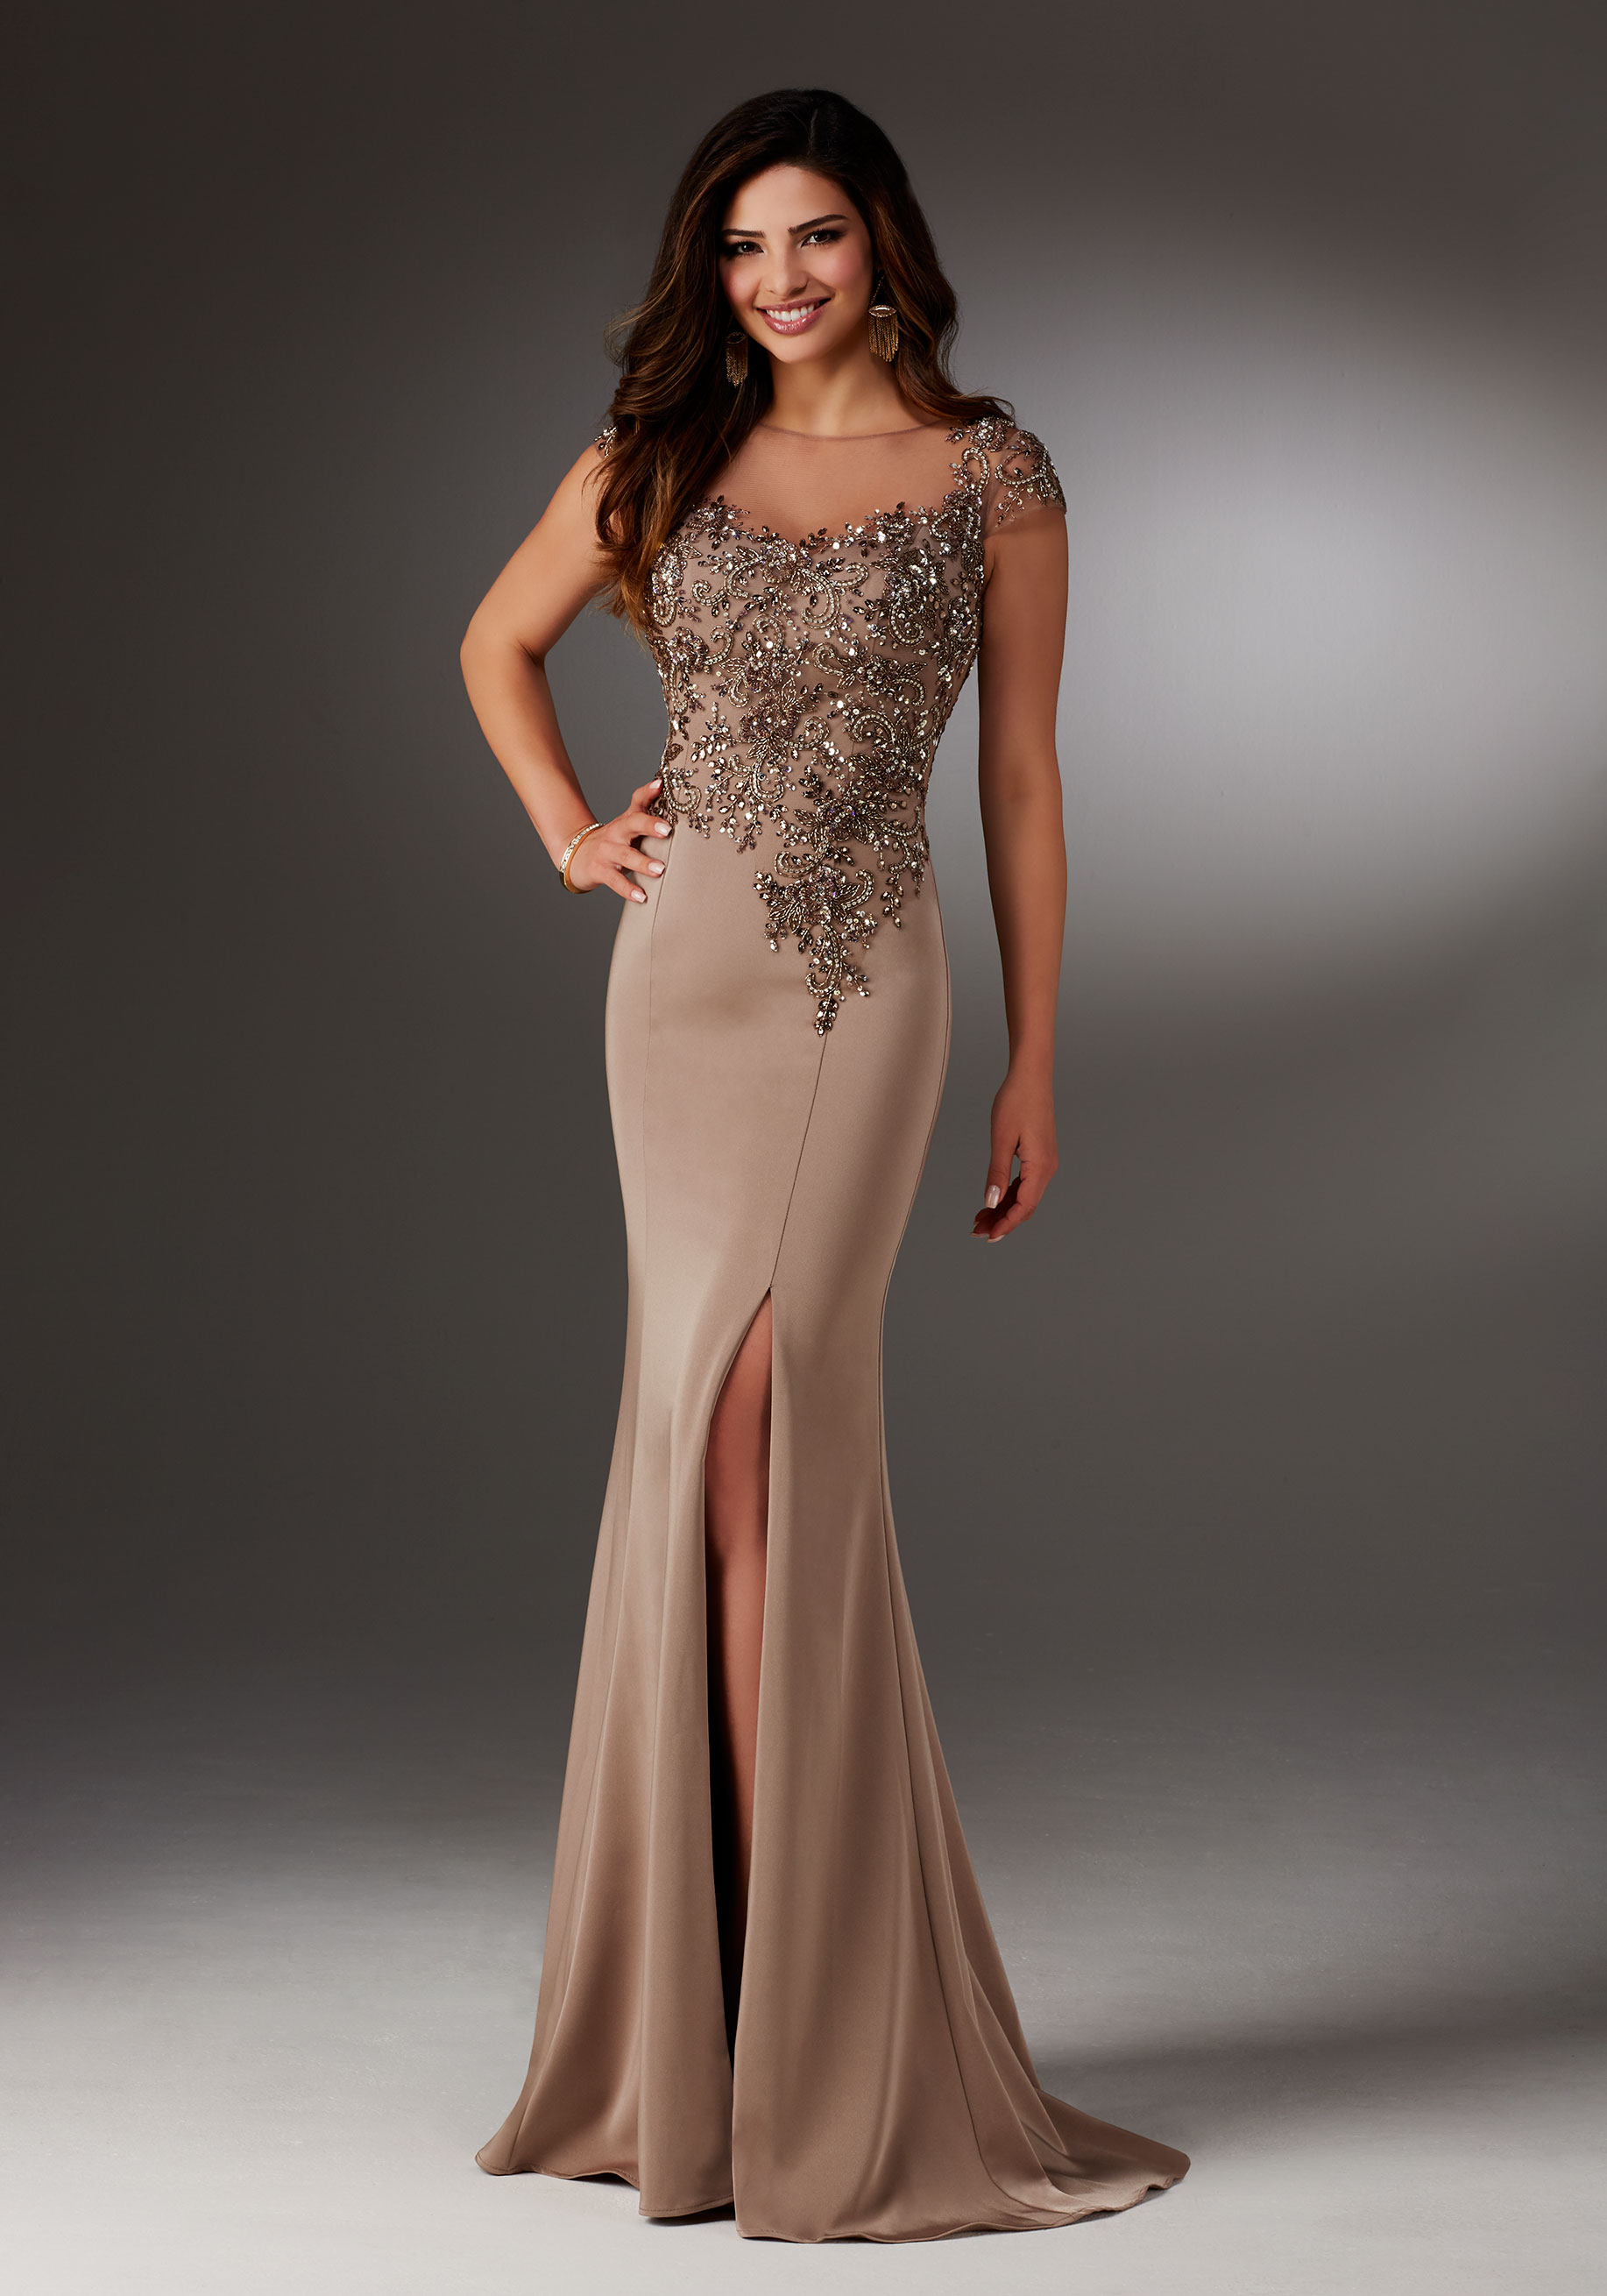 formal evening gown dresses photo - 1